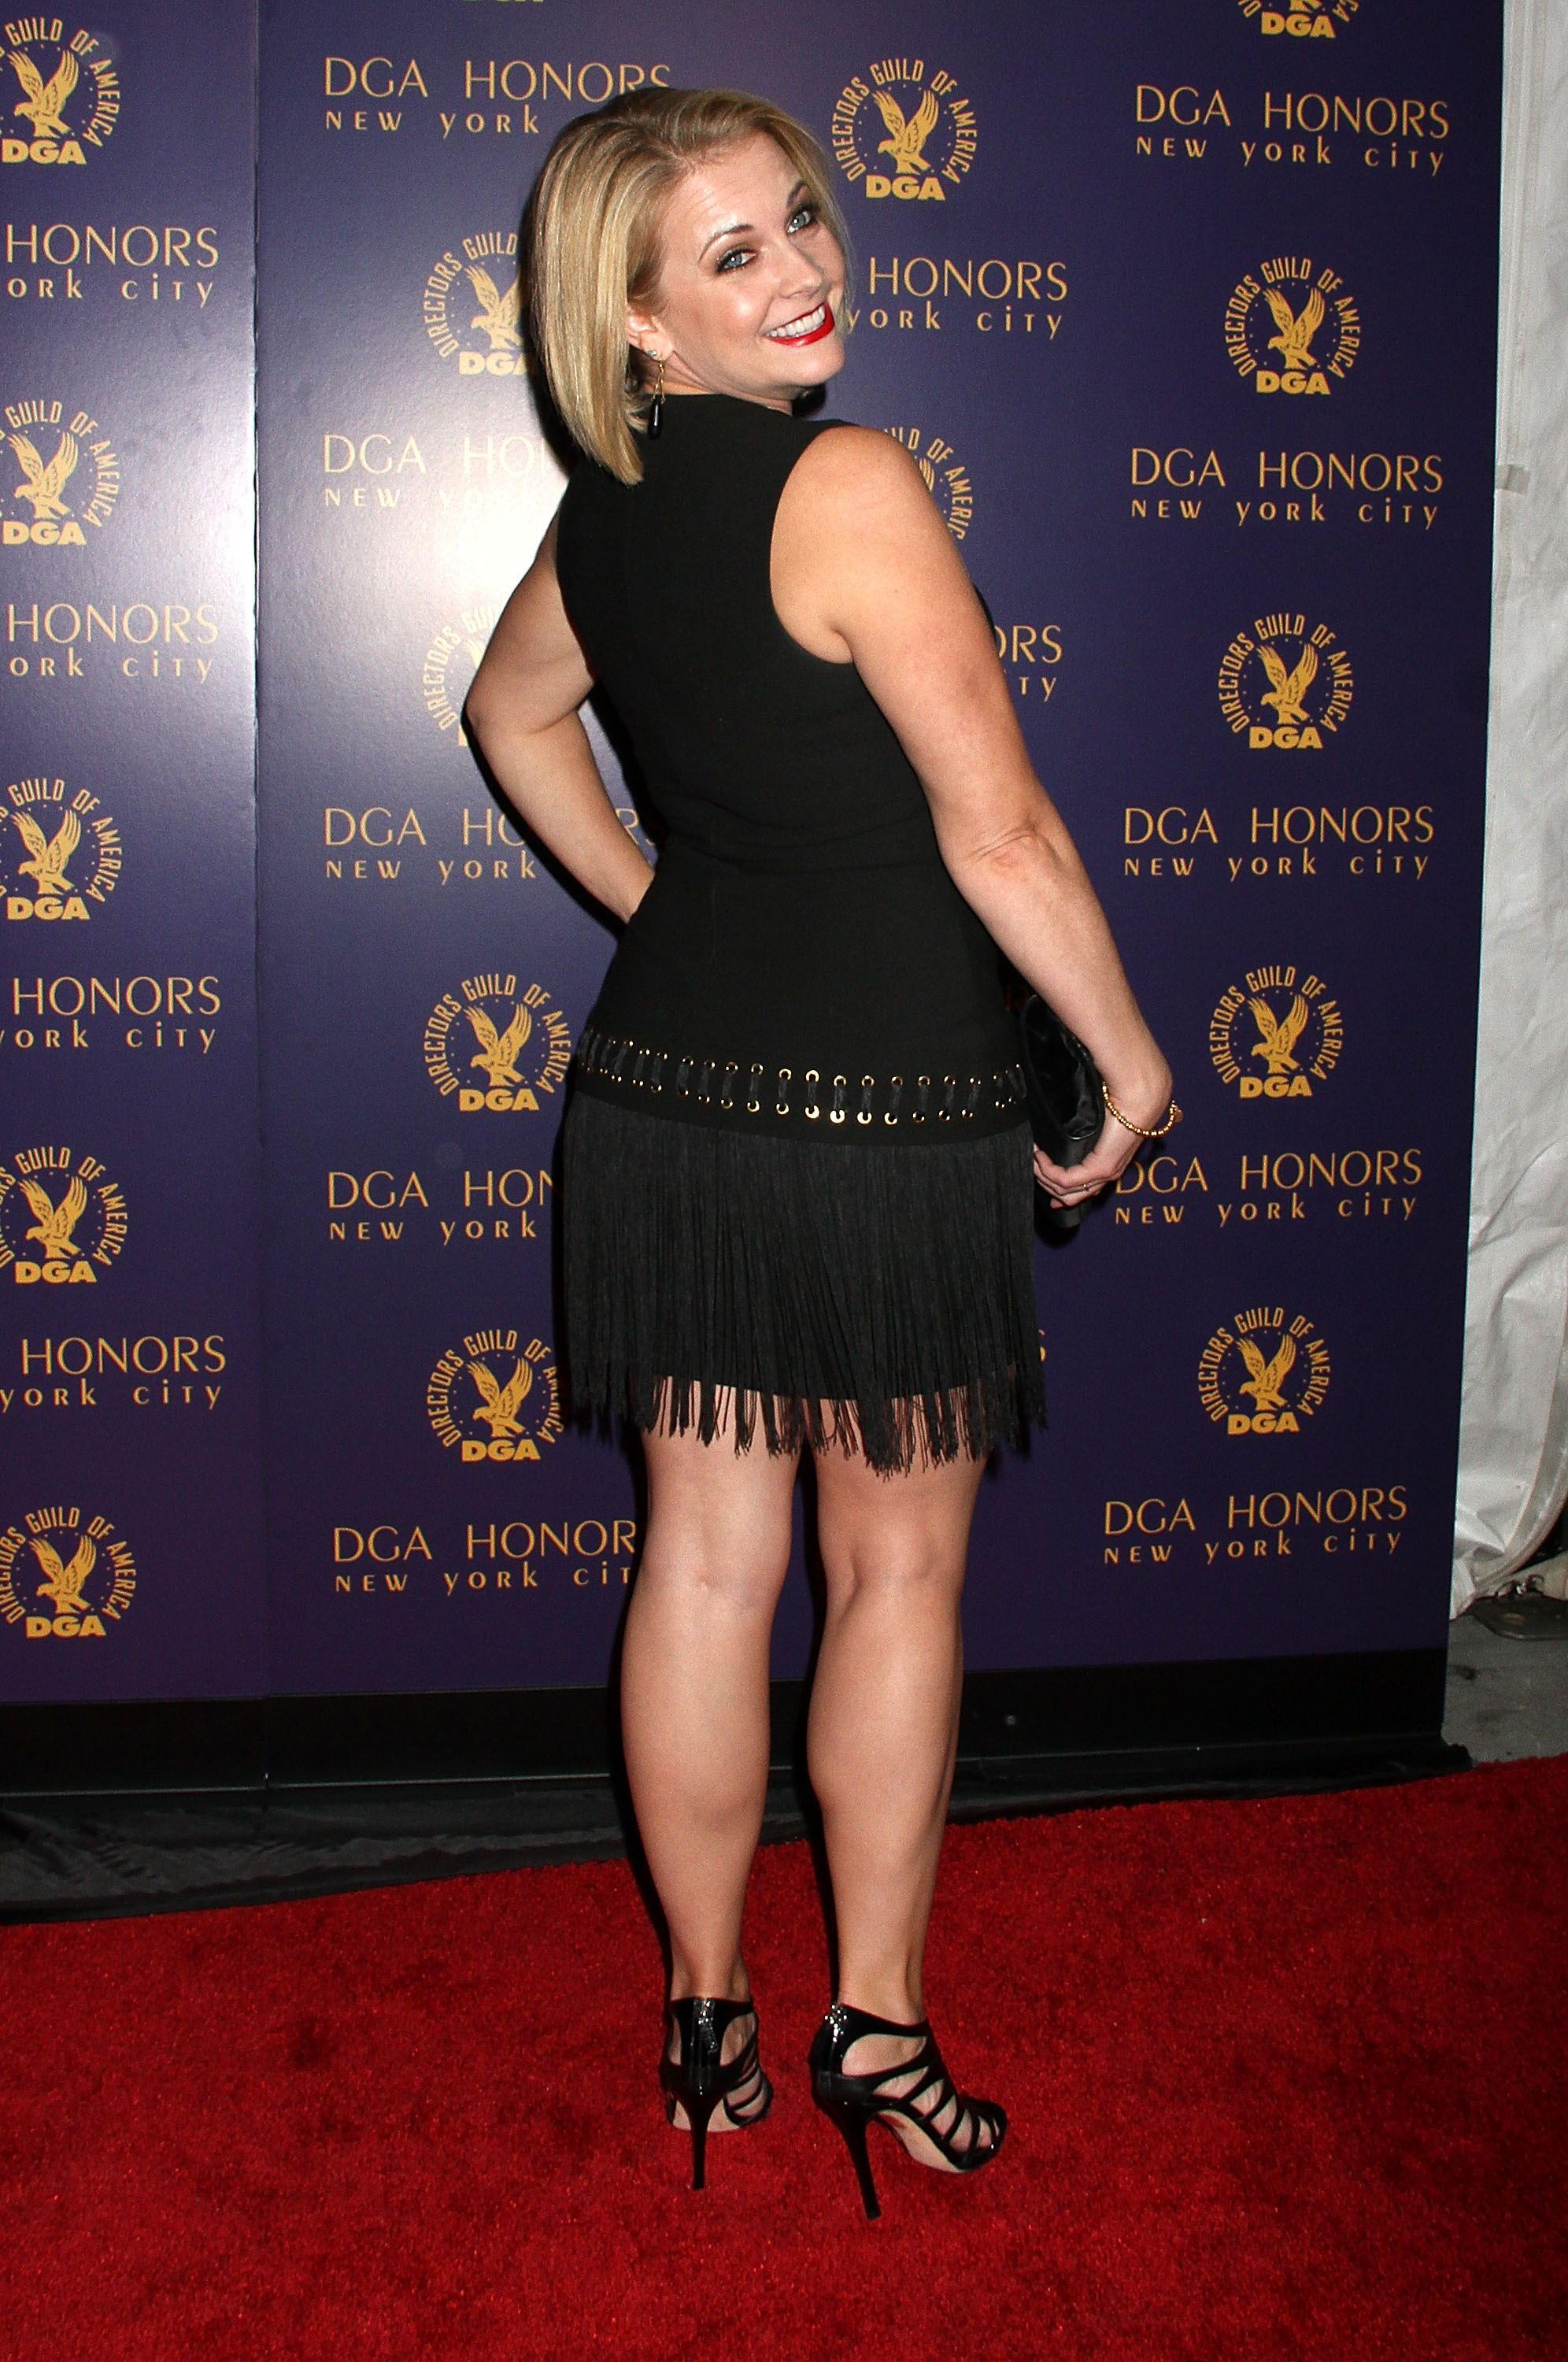 Melissa joan hart hot body — photo 15